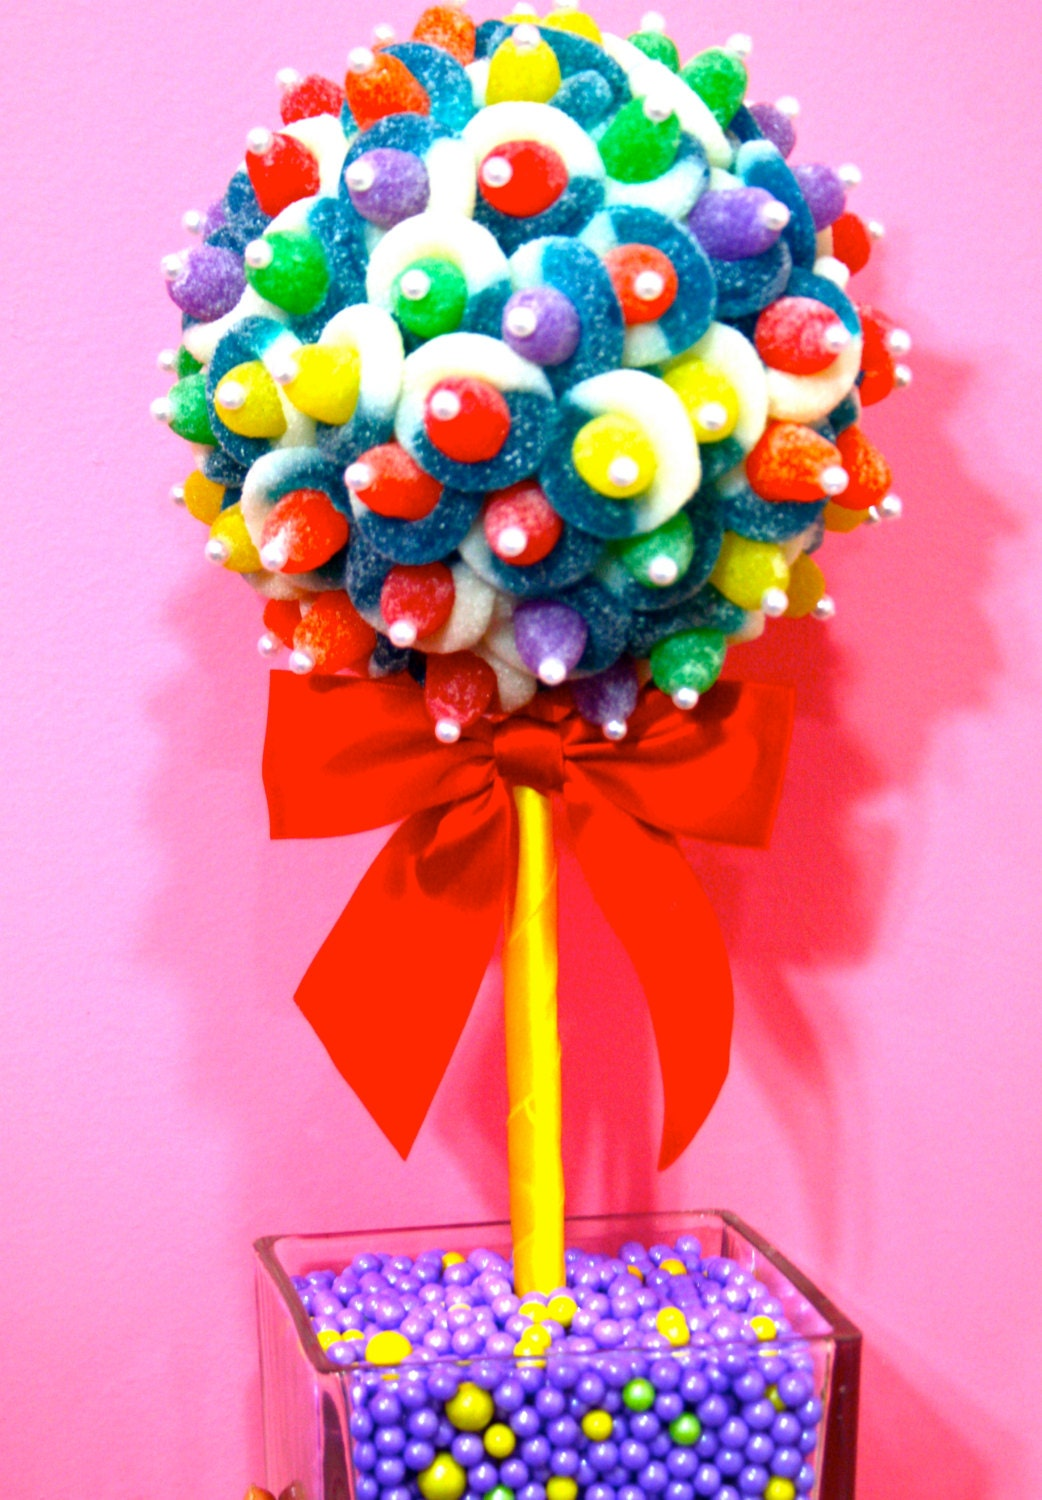 Rainbow Candy Cake: Rainbow Candy Land Centerpiece Topiary Tree Candy Buffet